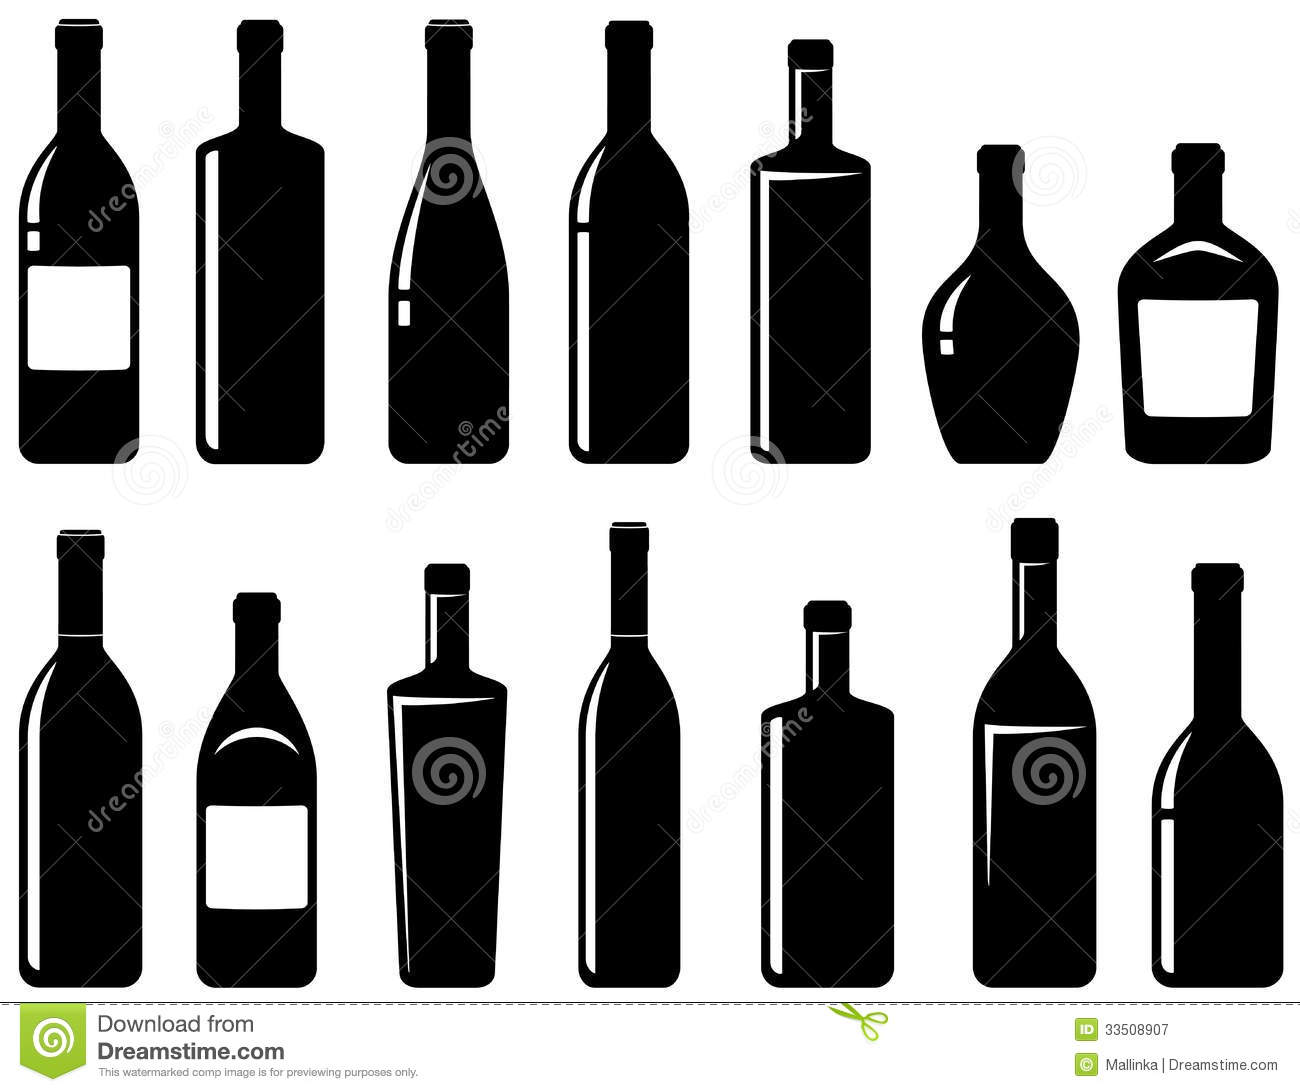 Liquor Bottle Black And White Clipart - Clipart Kid